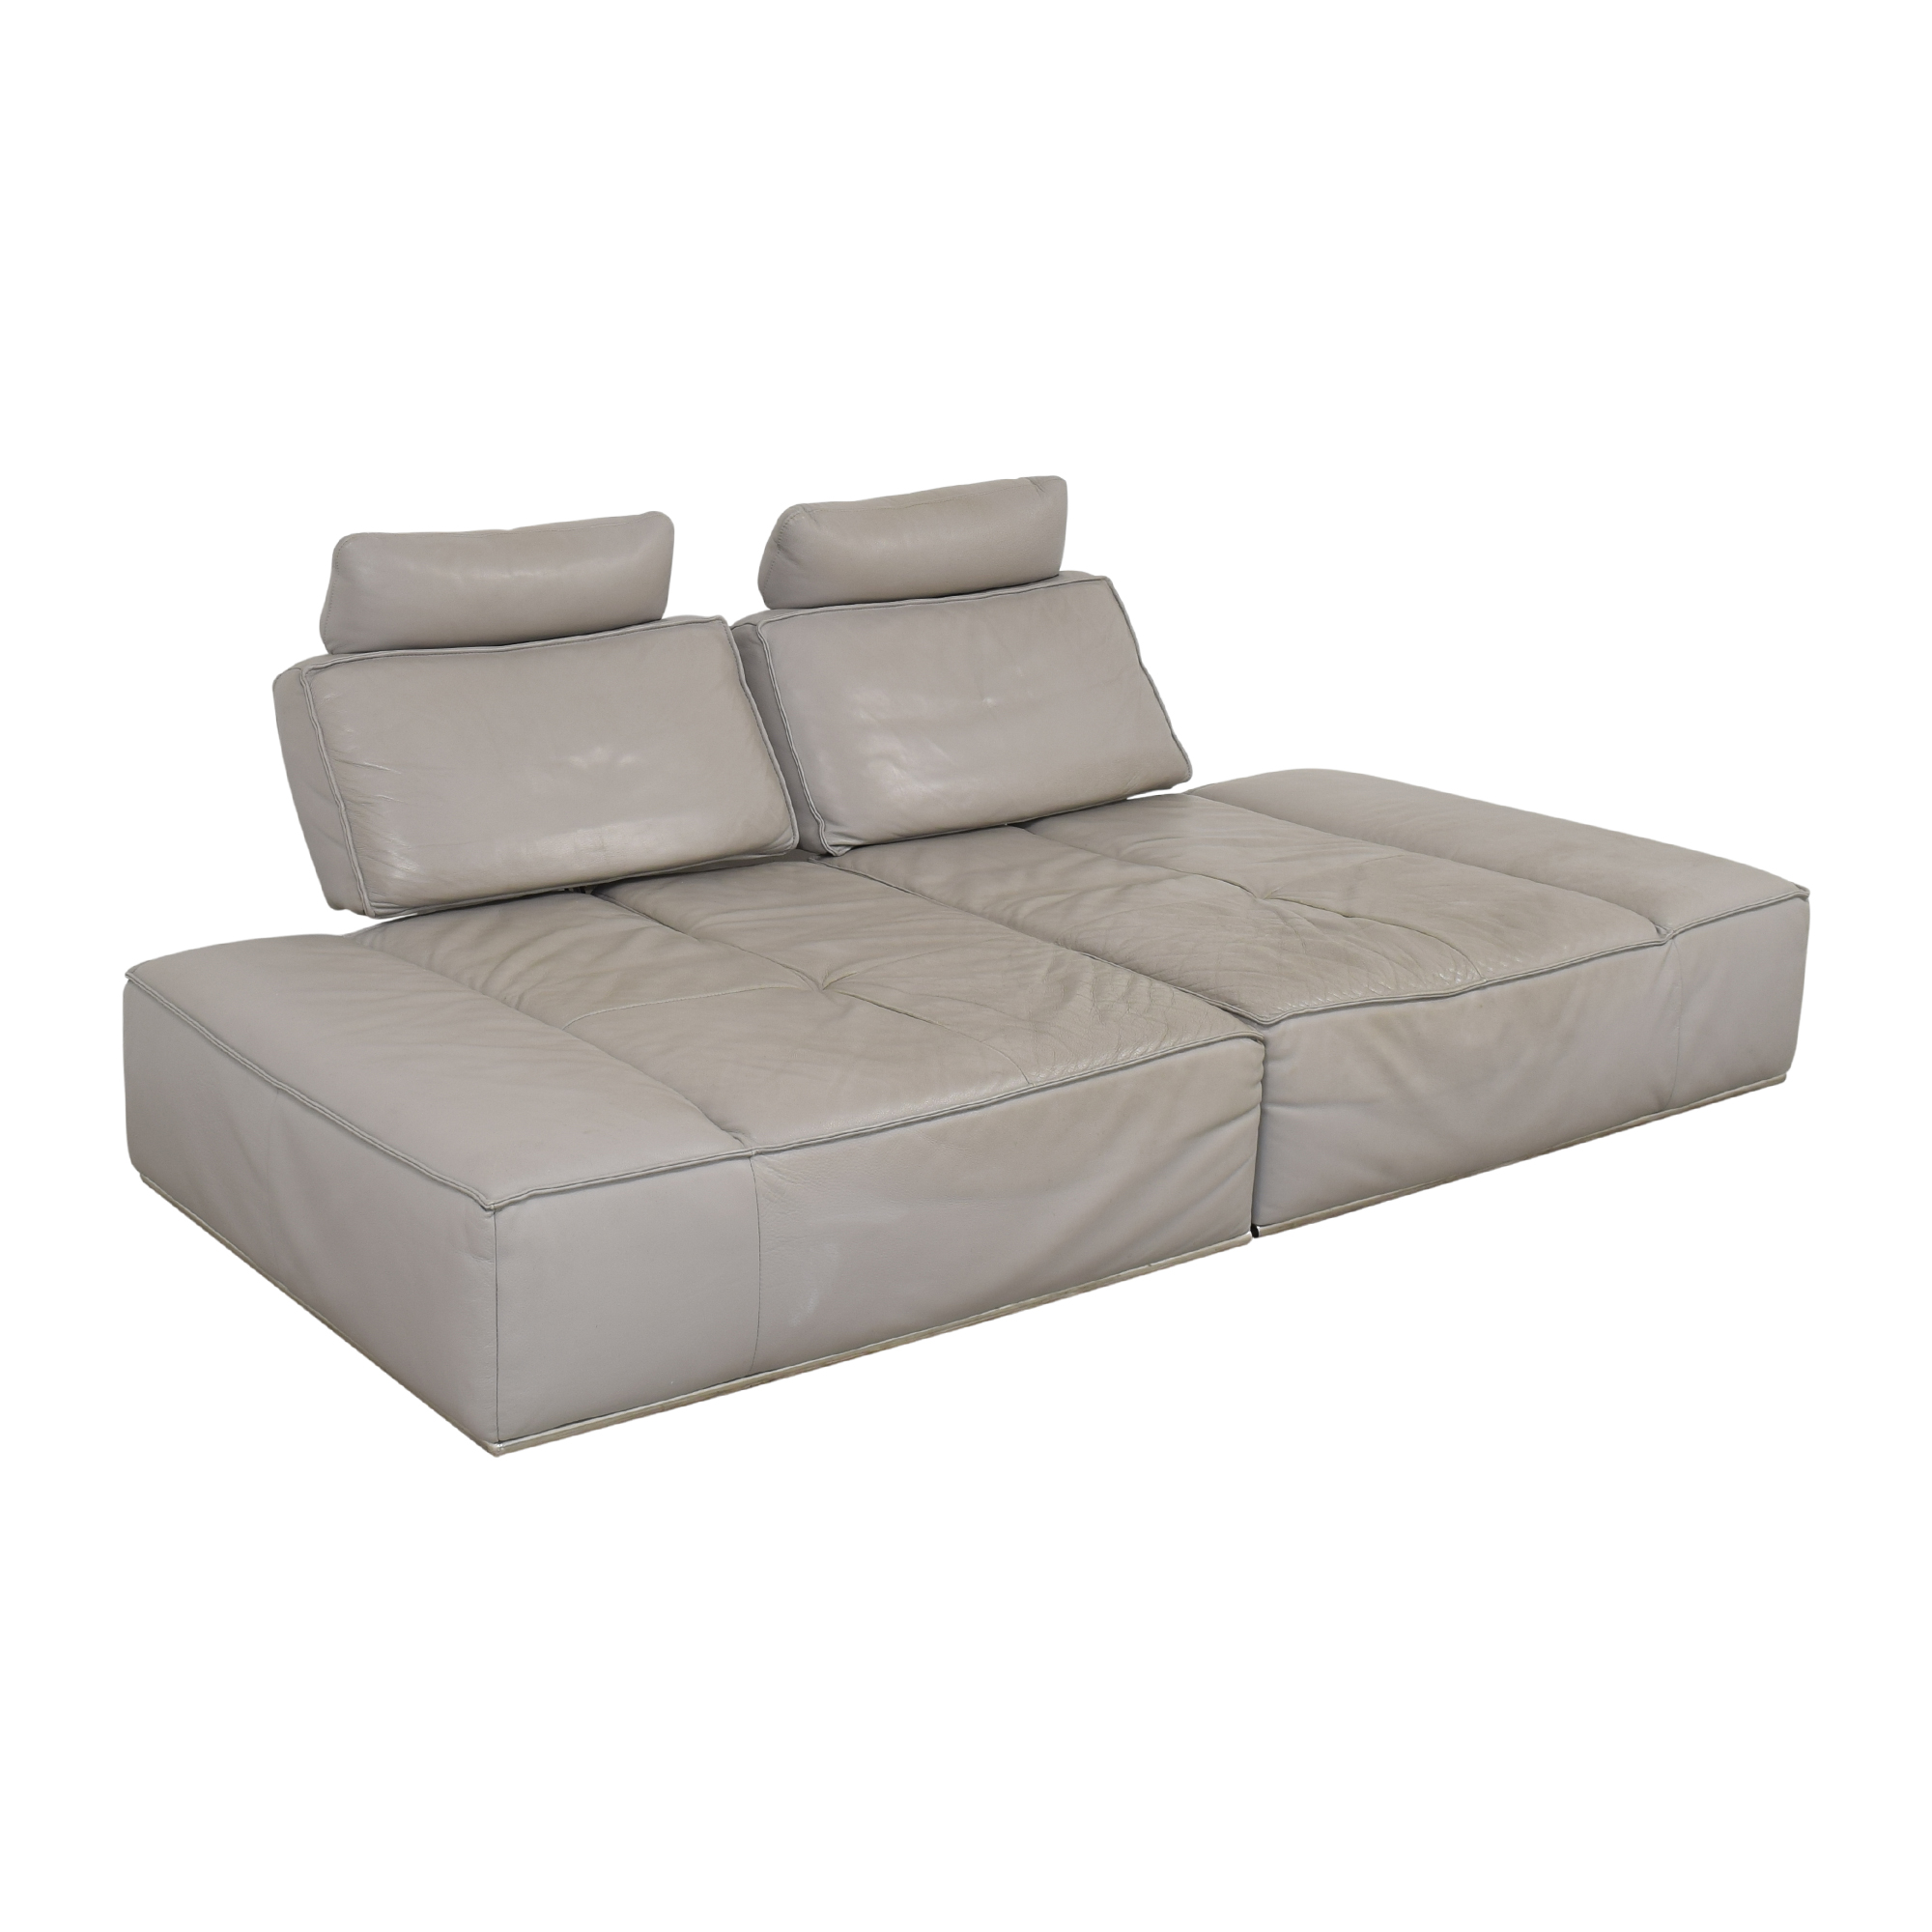 Sit Down New York Sit Down New York Convertible Sectional Sofa used